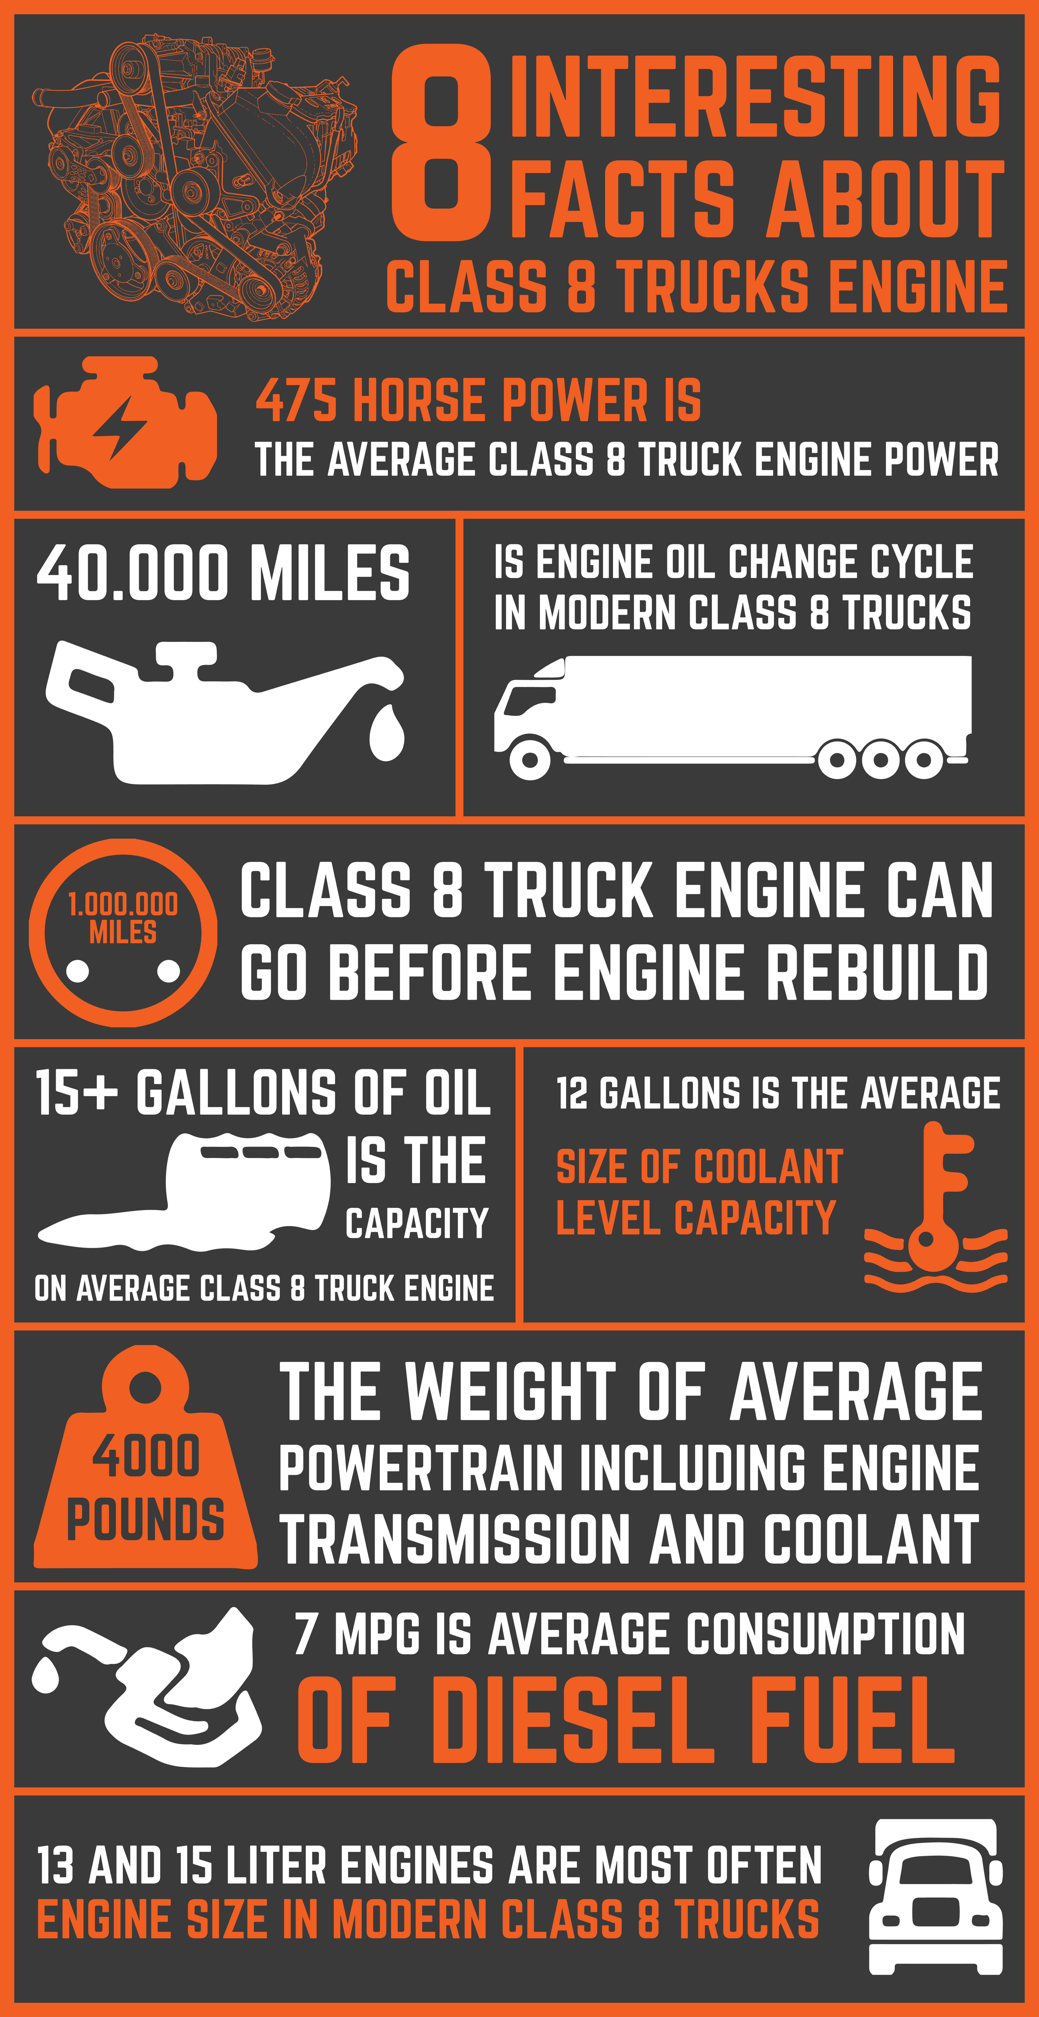 8 Interesting Facts About Class 8 Truck Engine